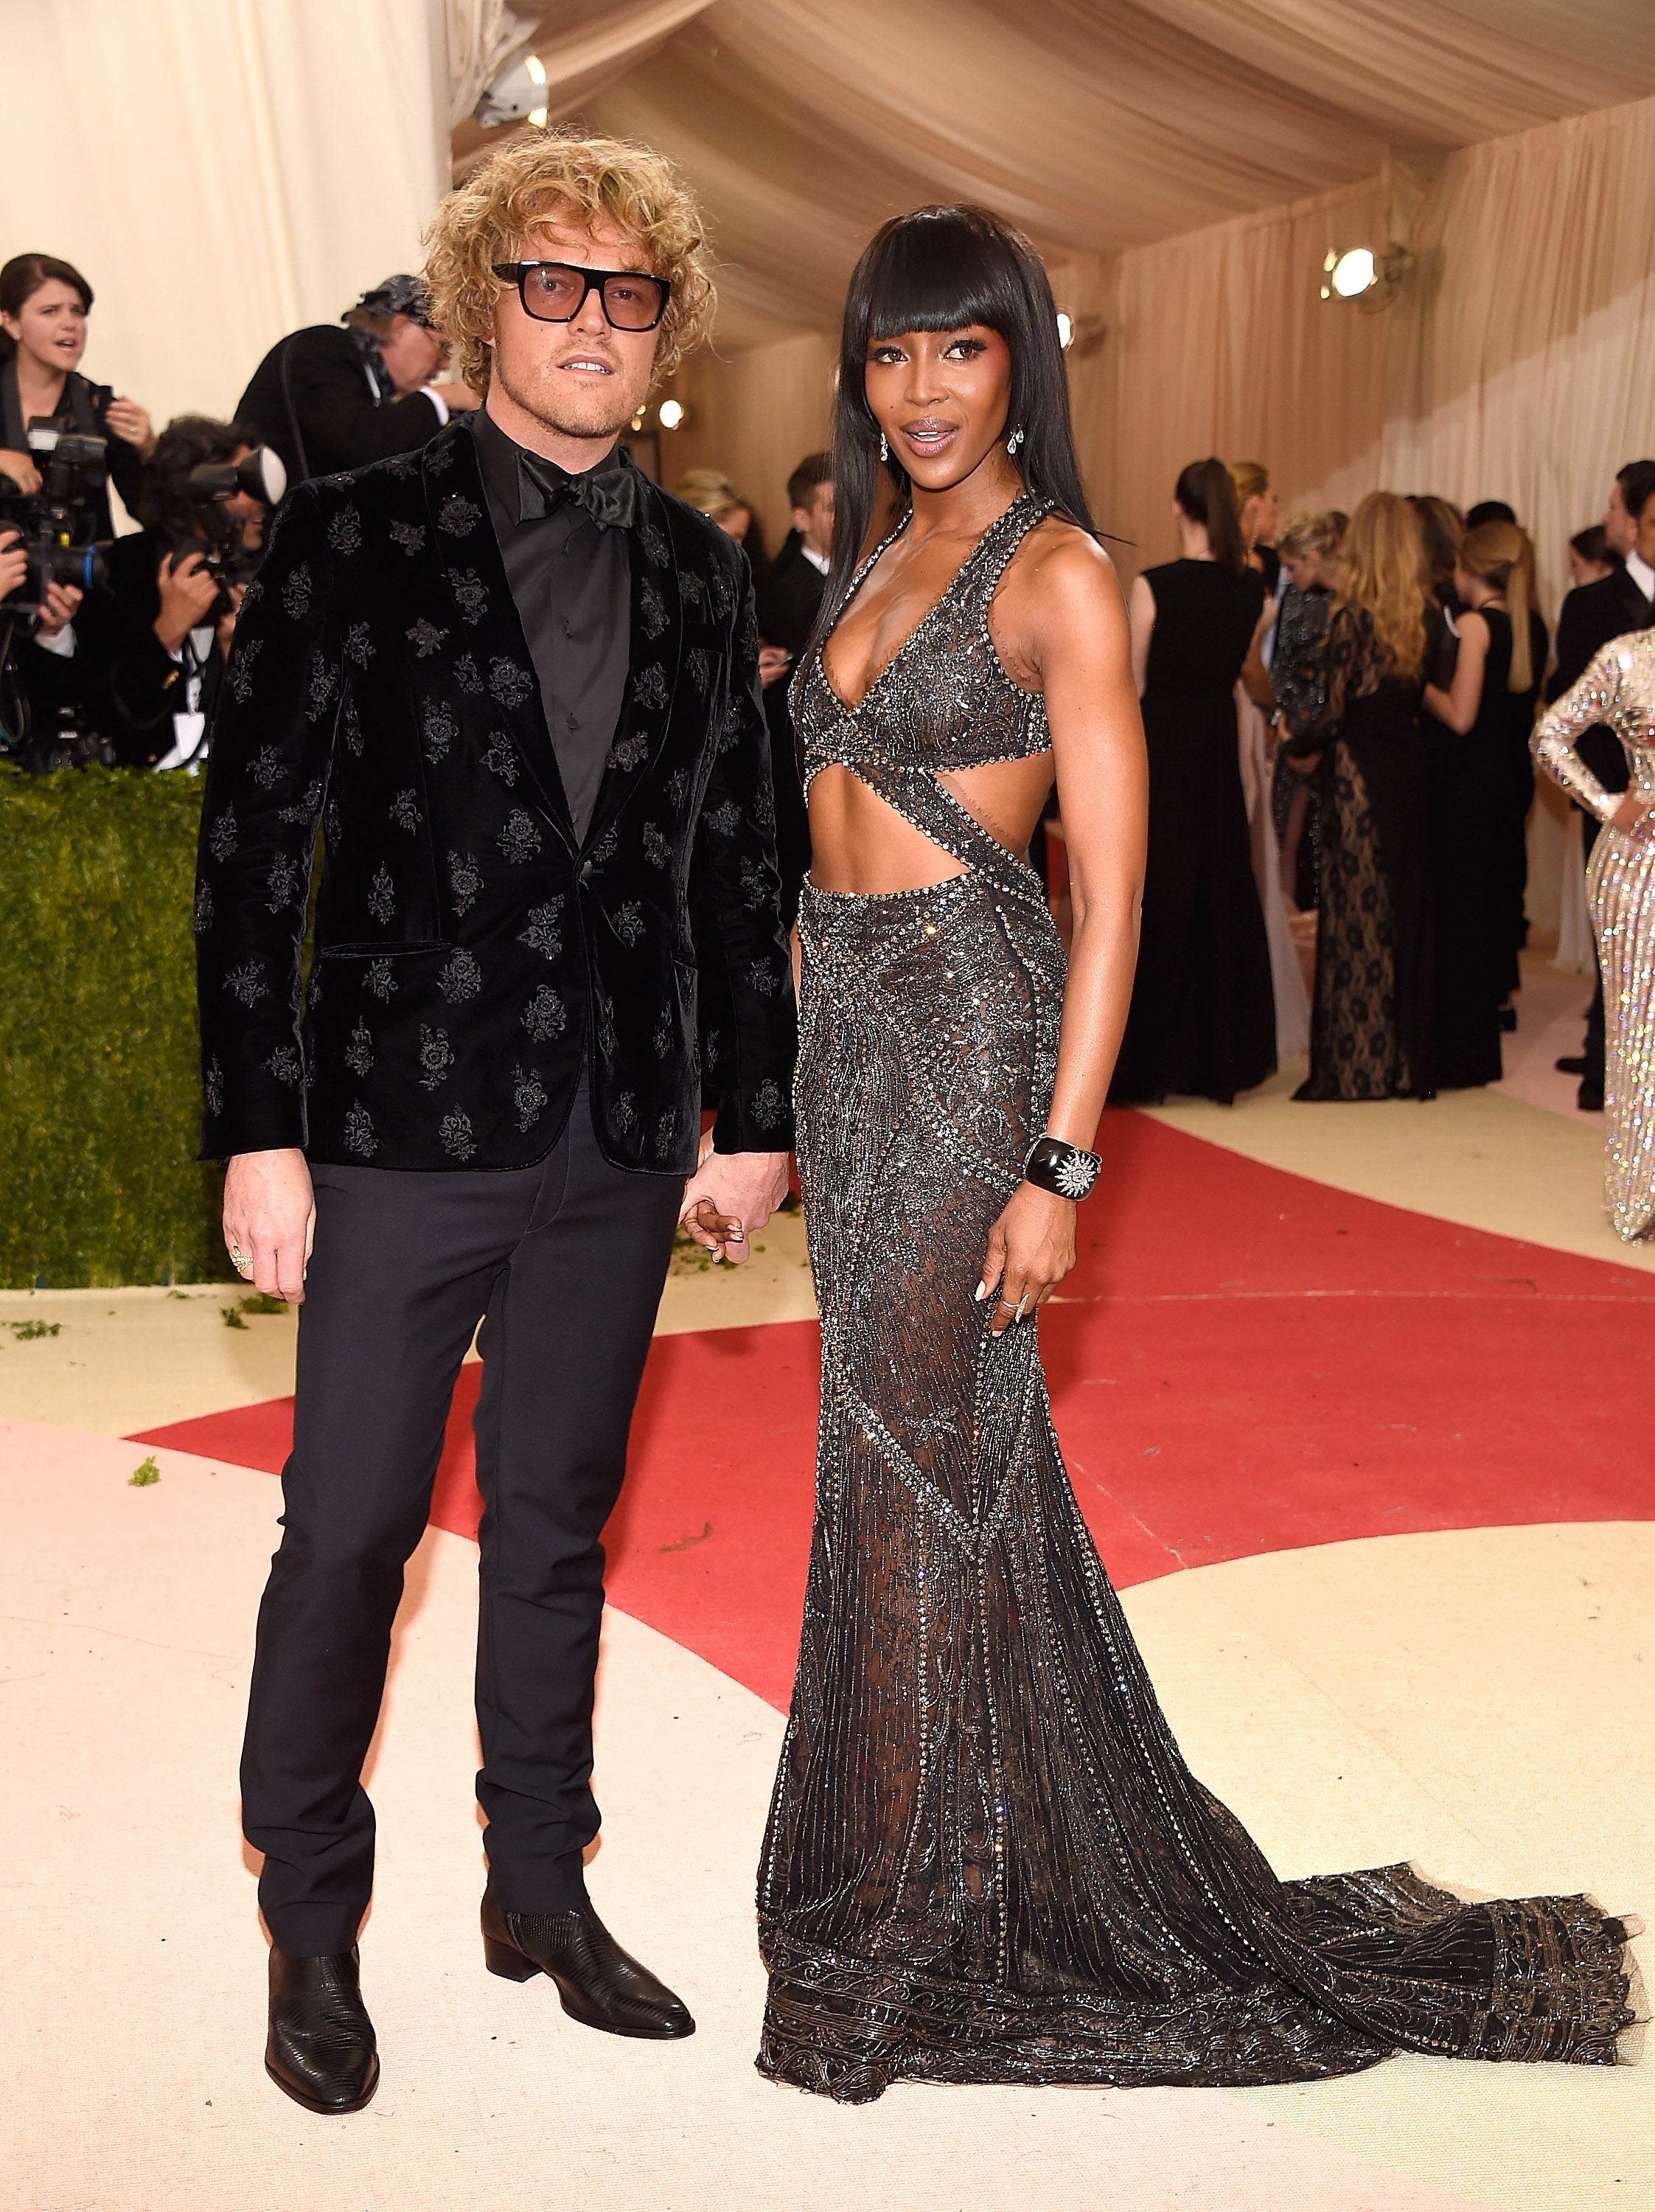 Peter Dundas and Naomi Campbell attend  Manus x Machina: Fashion In An Age Of Technology  Costume Institute Gala at Metropolitan Museum of Art on May 2, 2016 in New York City.